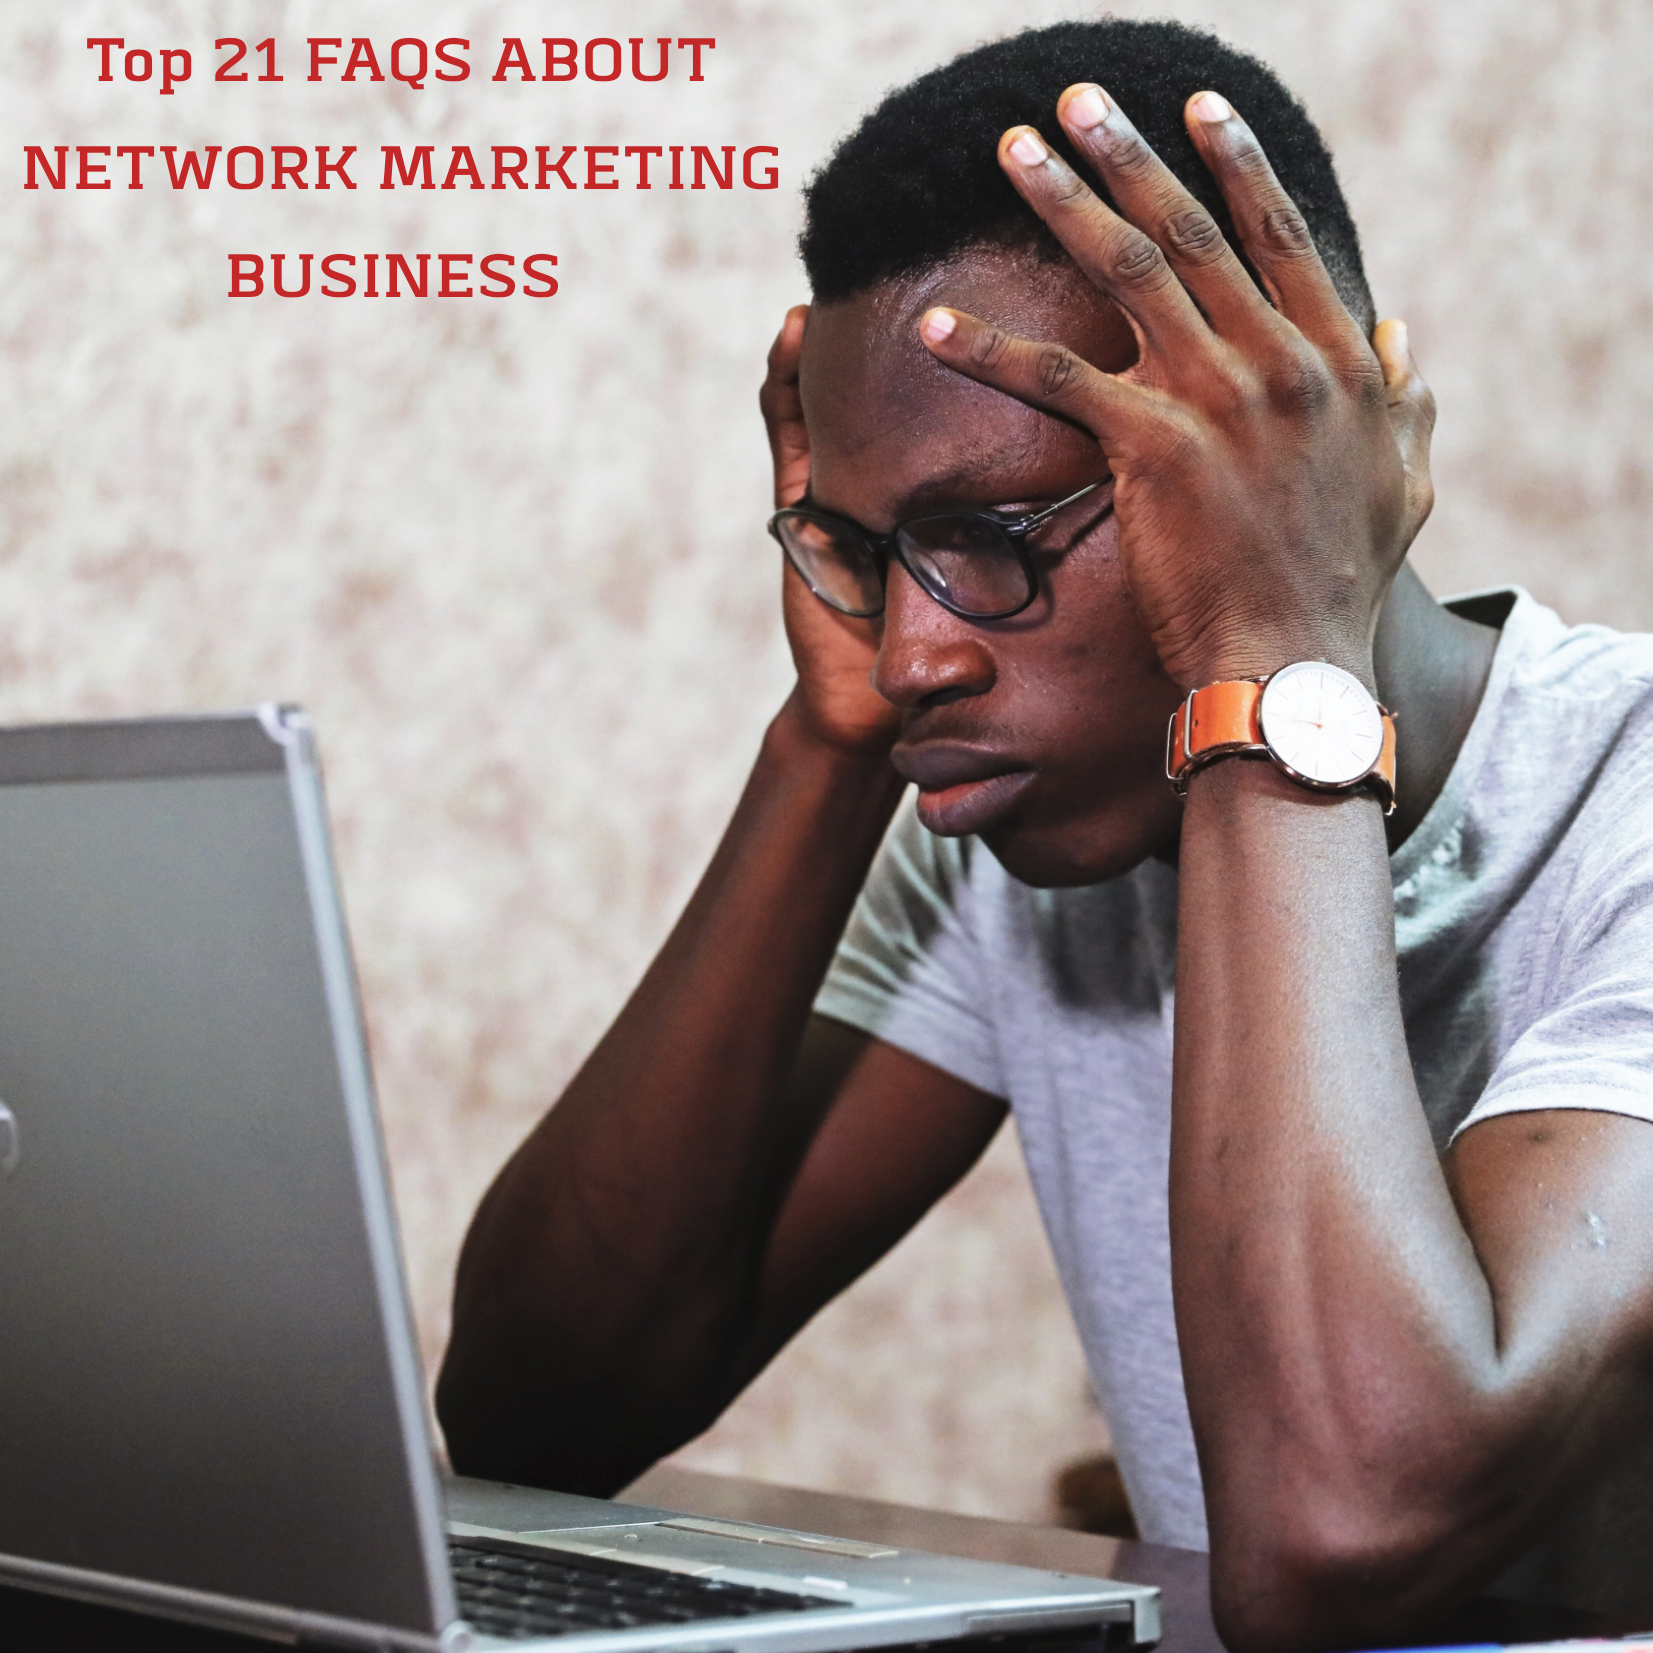 Top 21 FAQS about network marketing business